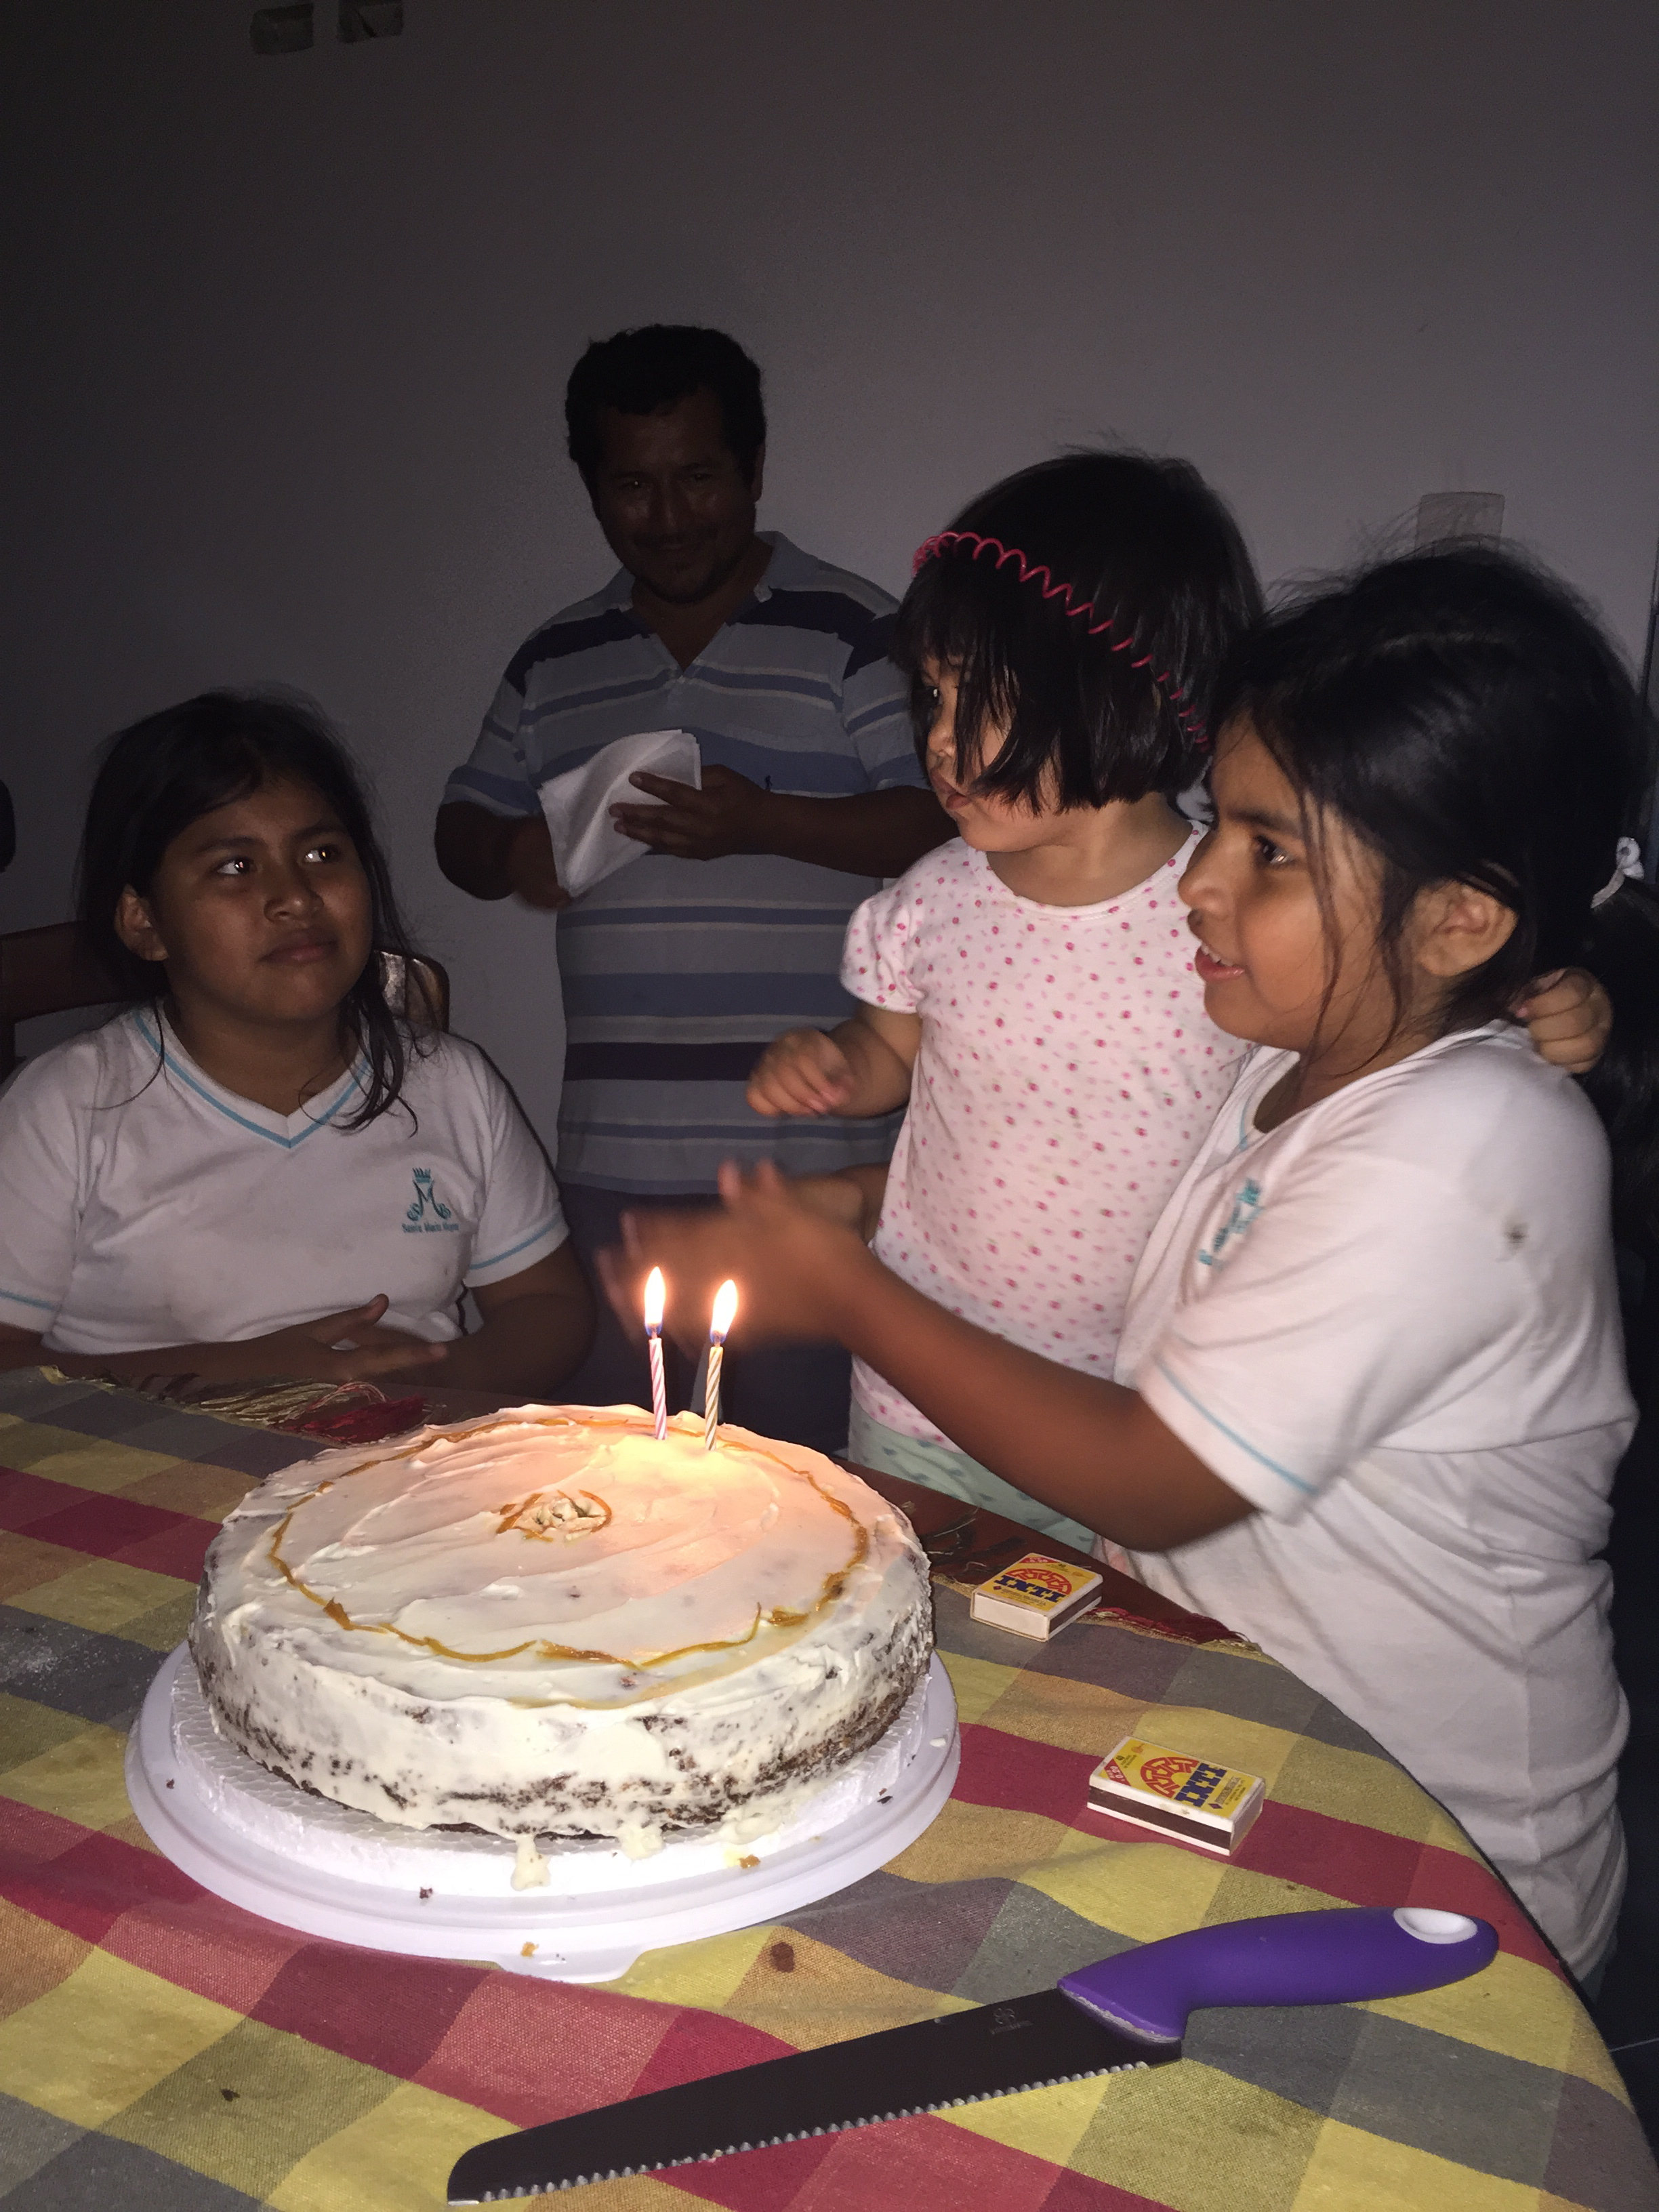 If you are lucky, you may even get to celebrate a birthday with your homestay family!